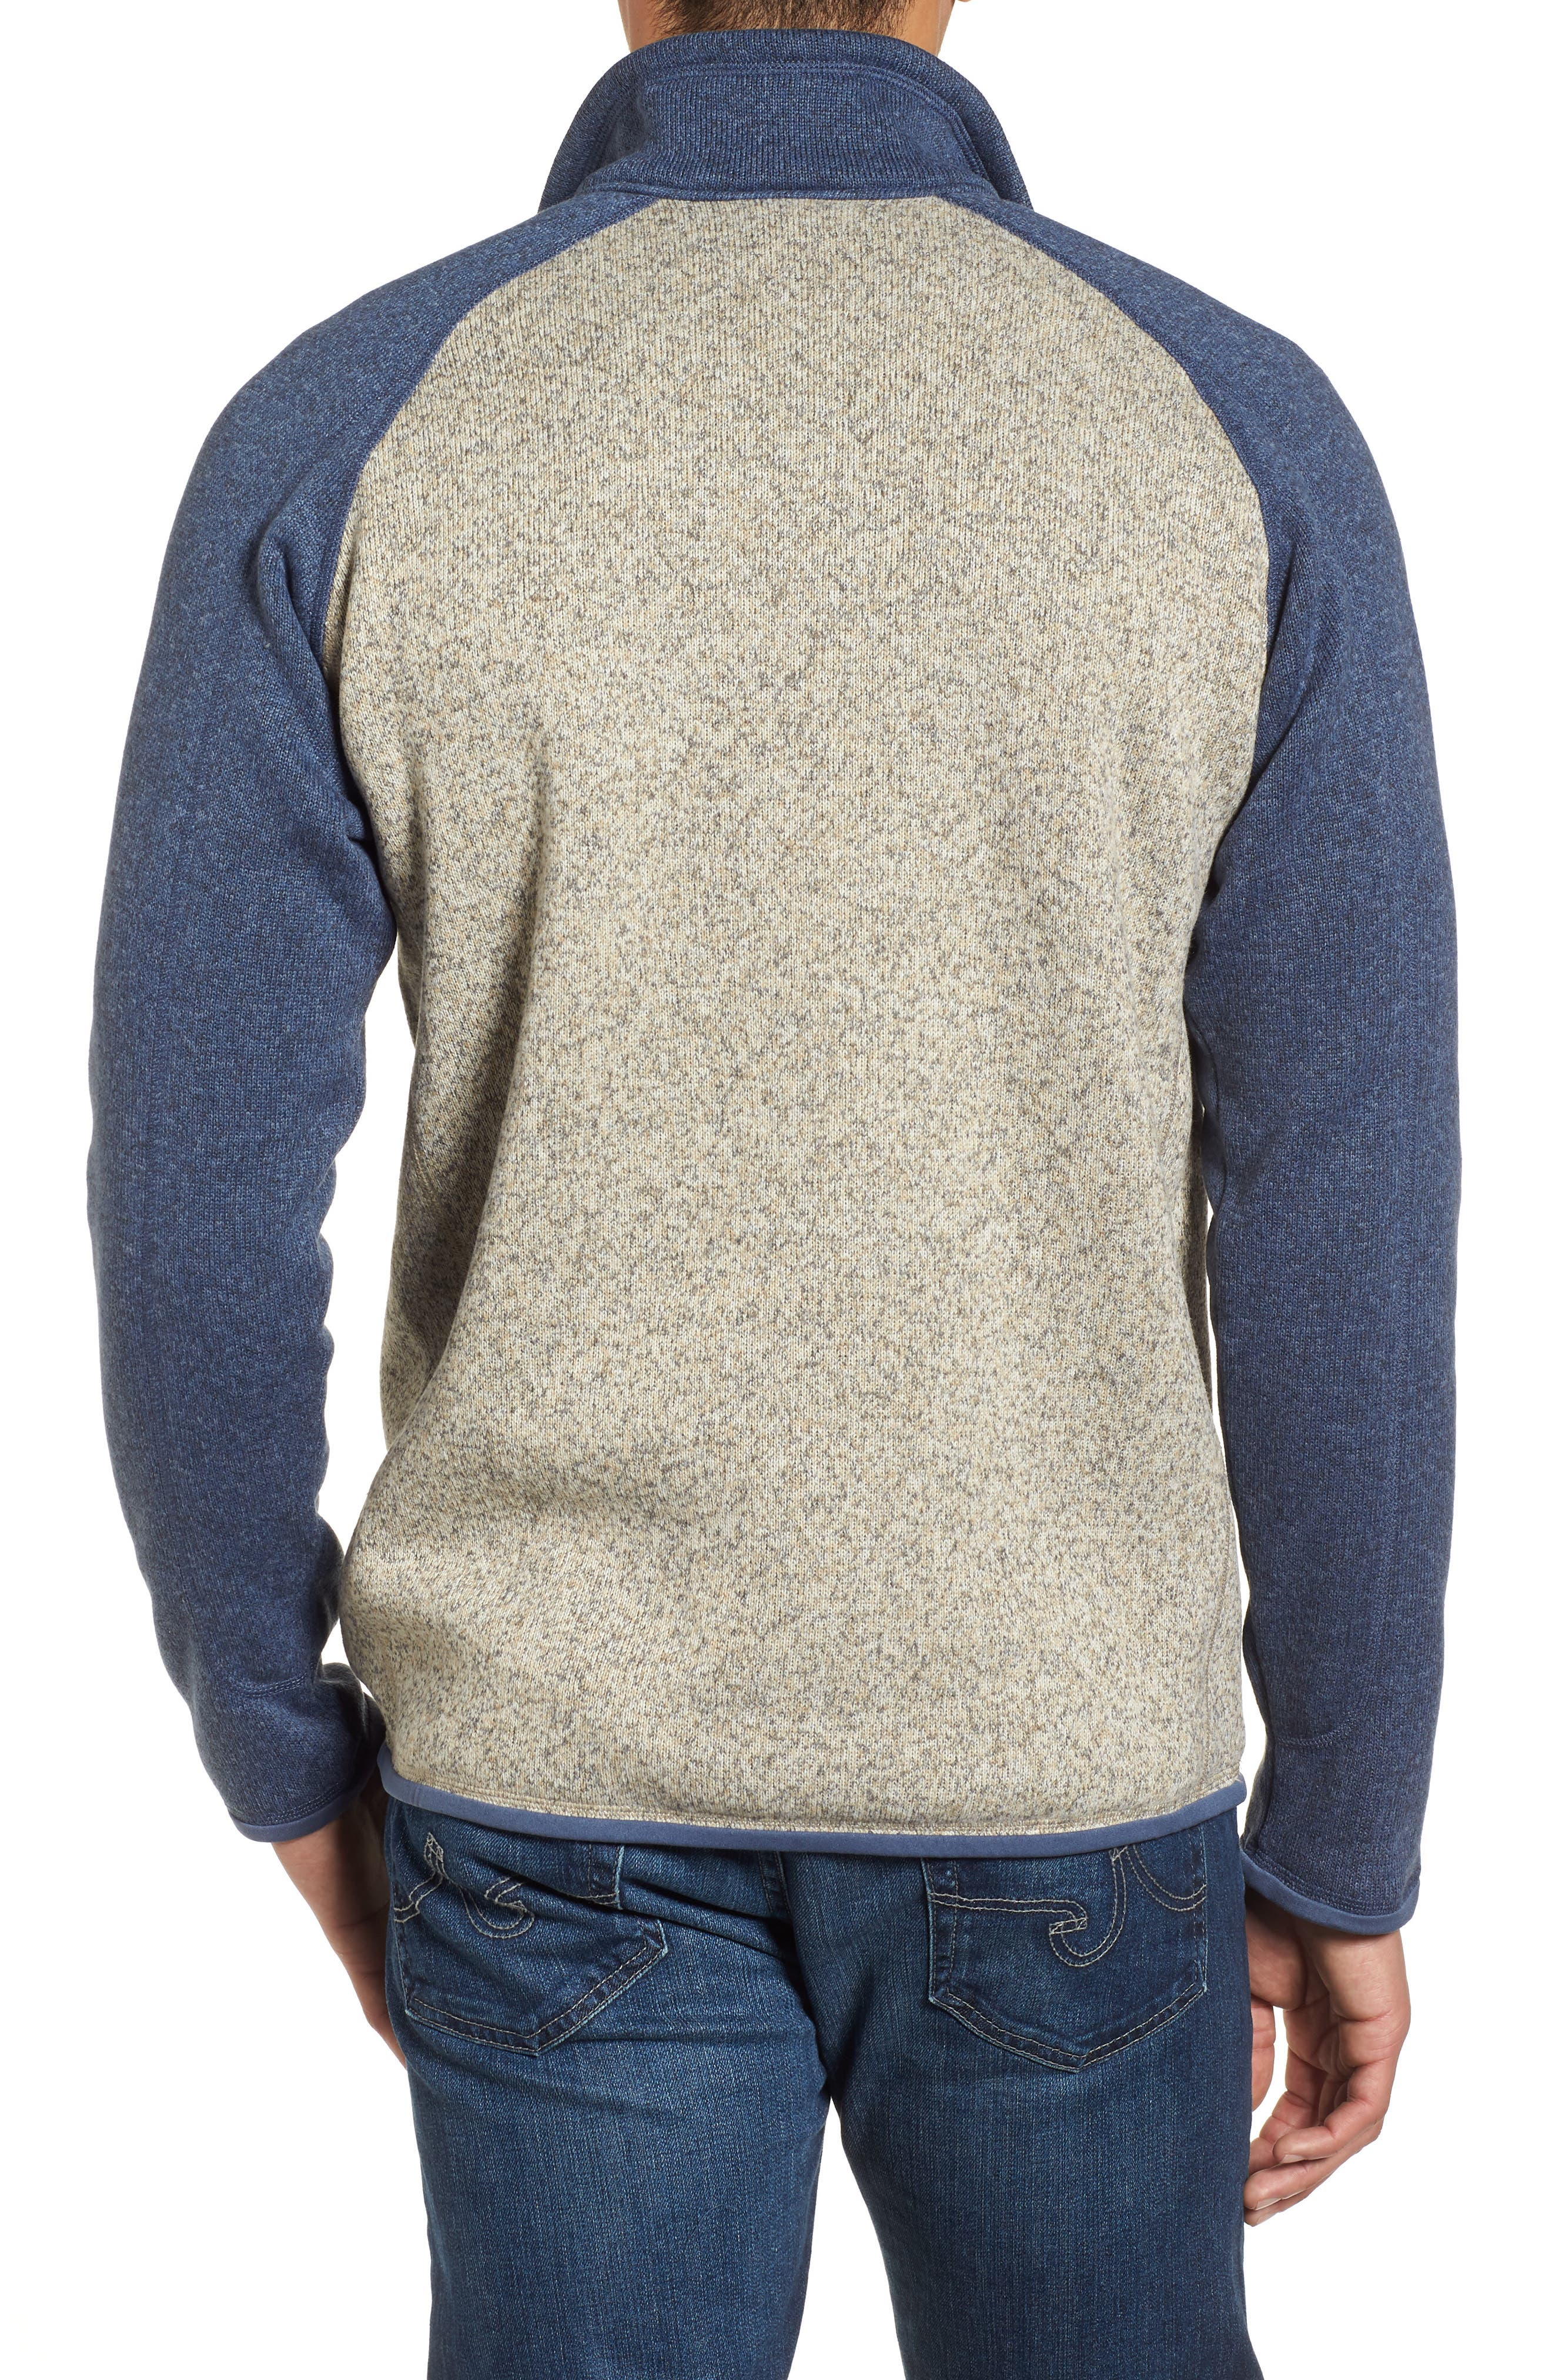 PATAGONIA, Better Sweater Quarter Zip Pullover, Alternate thumbnail 2, color, BLEACHED STONE W/DOLOMITE BLUE